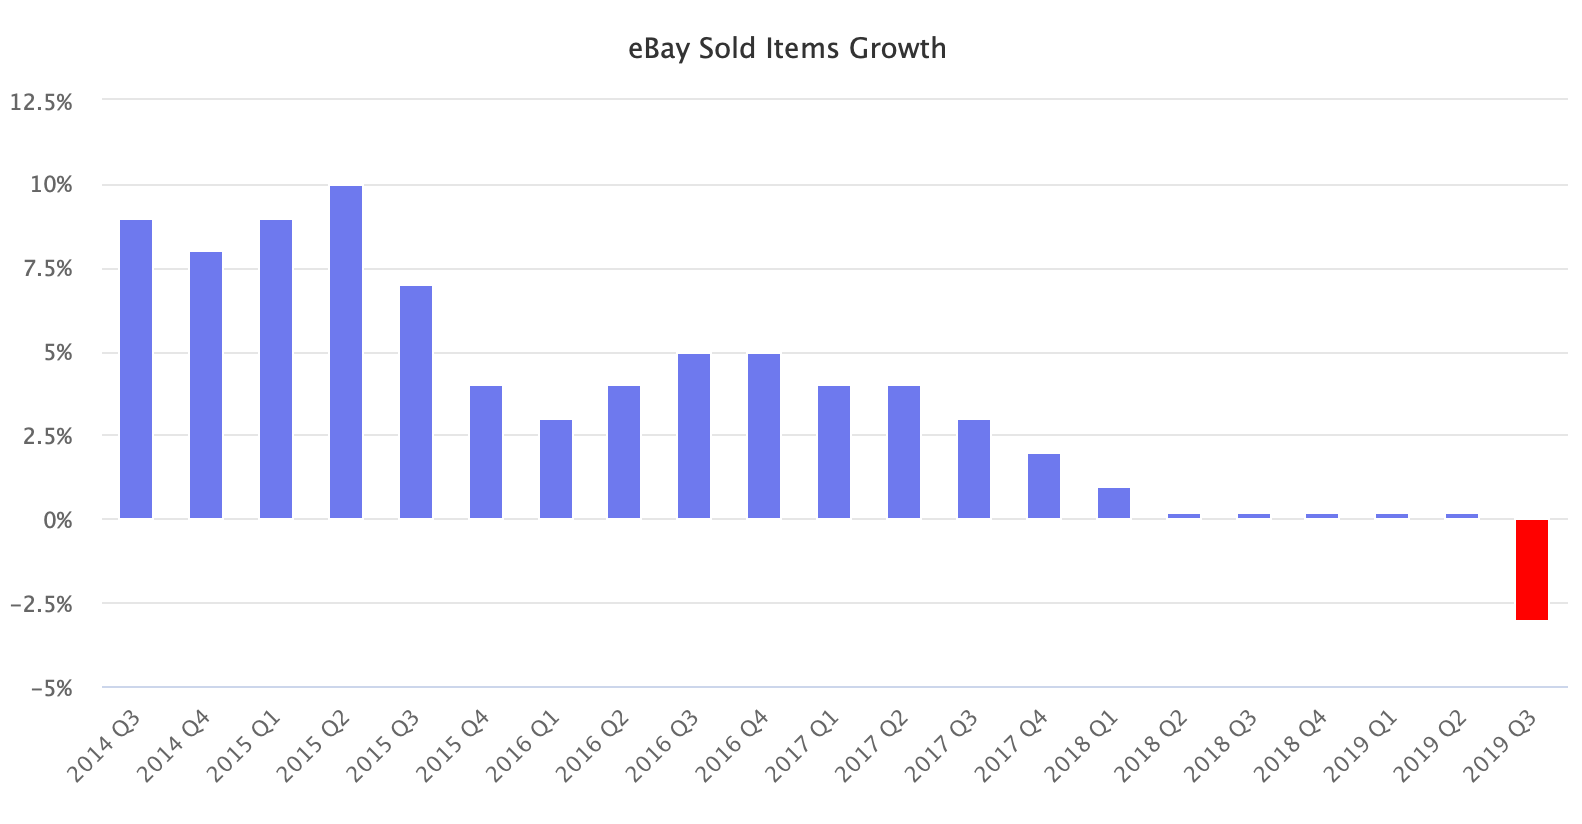 eBay Sold Items Growth